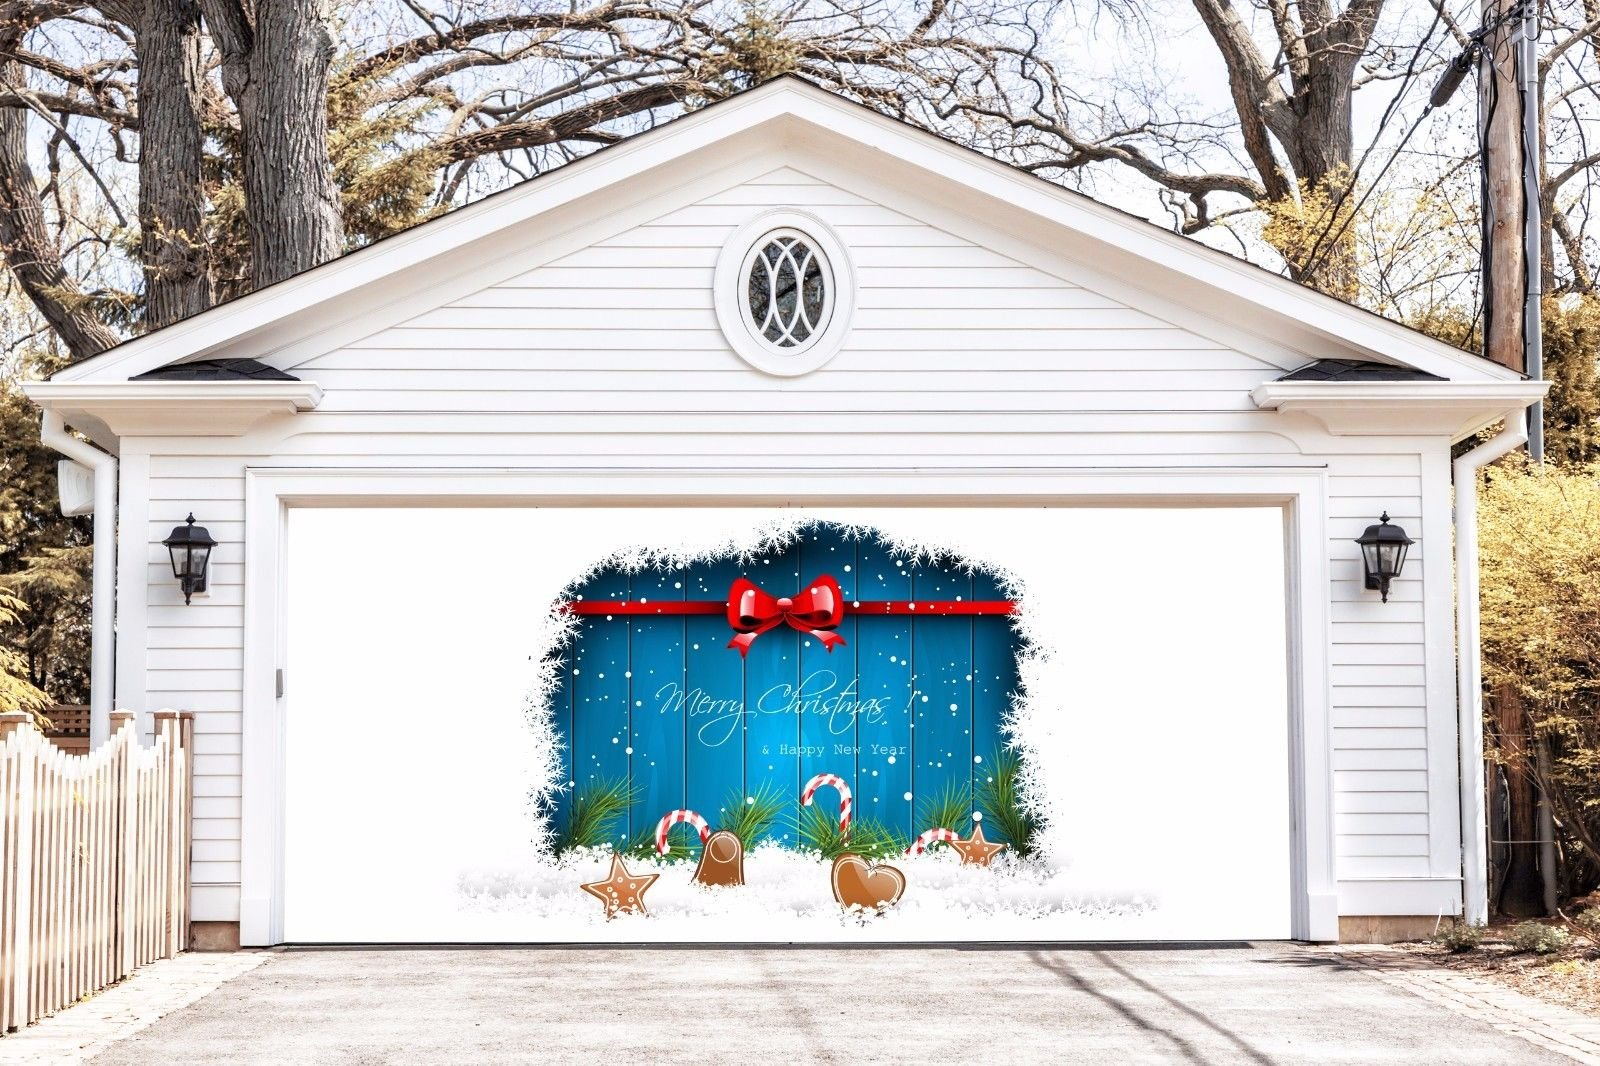 Christmas Banners Outdoor Decorations Garage Door Full Color Covers Holiday Billboard for 2 Car Garage Door Merry Christmas and Happy New Year Decor Murals size 82x188 inches made in the USA DAV48 by WallTattooHome